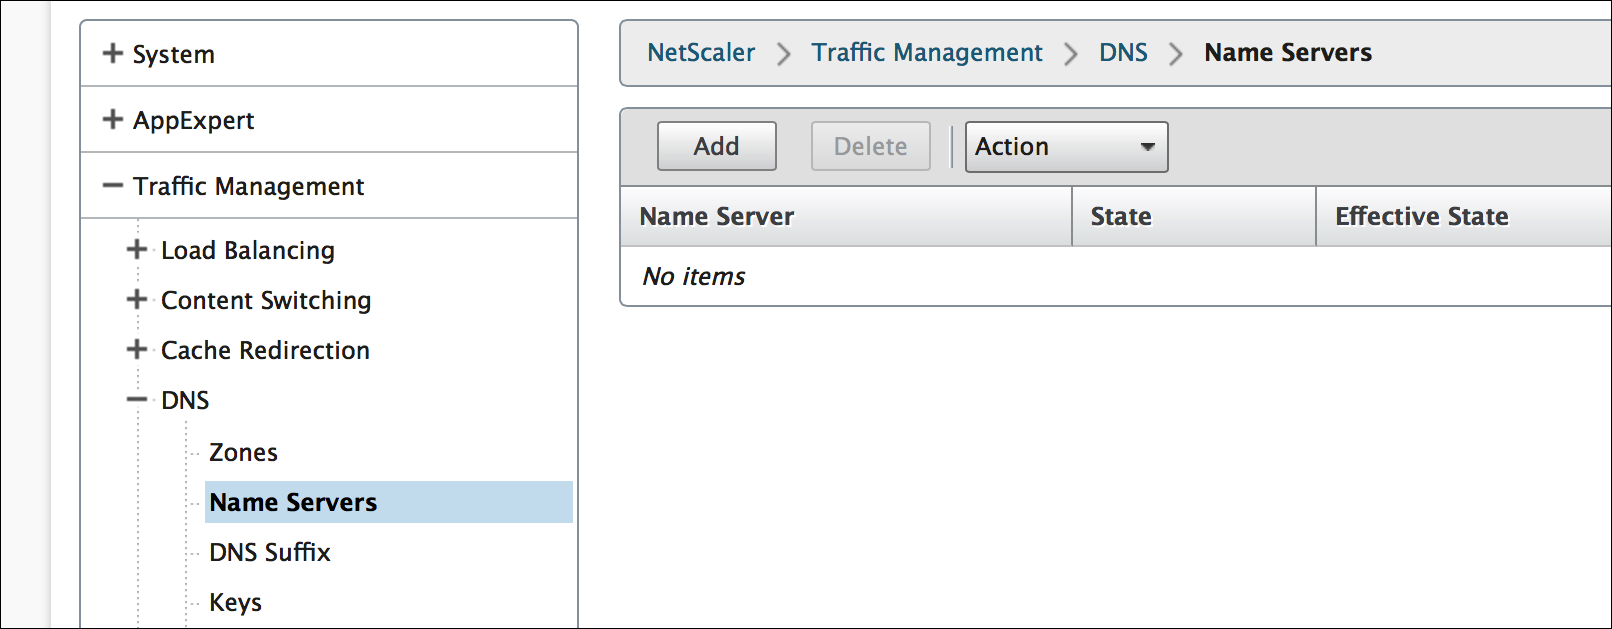 How to Enable NetScaler Appliance to Use DNS for Resolving the